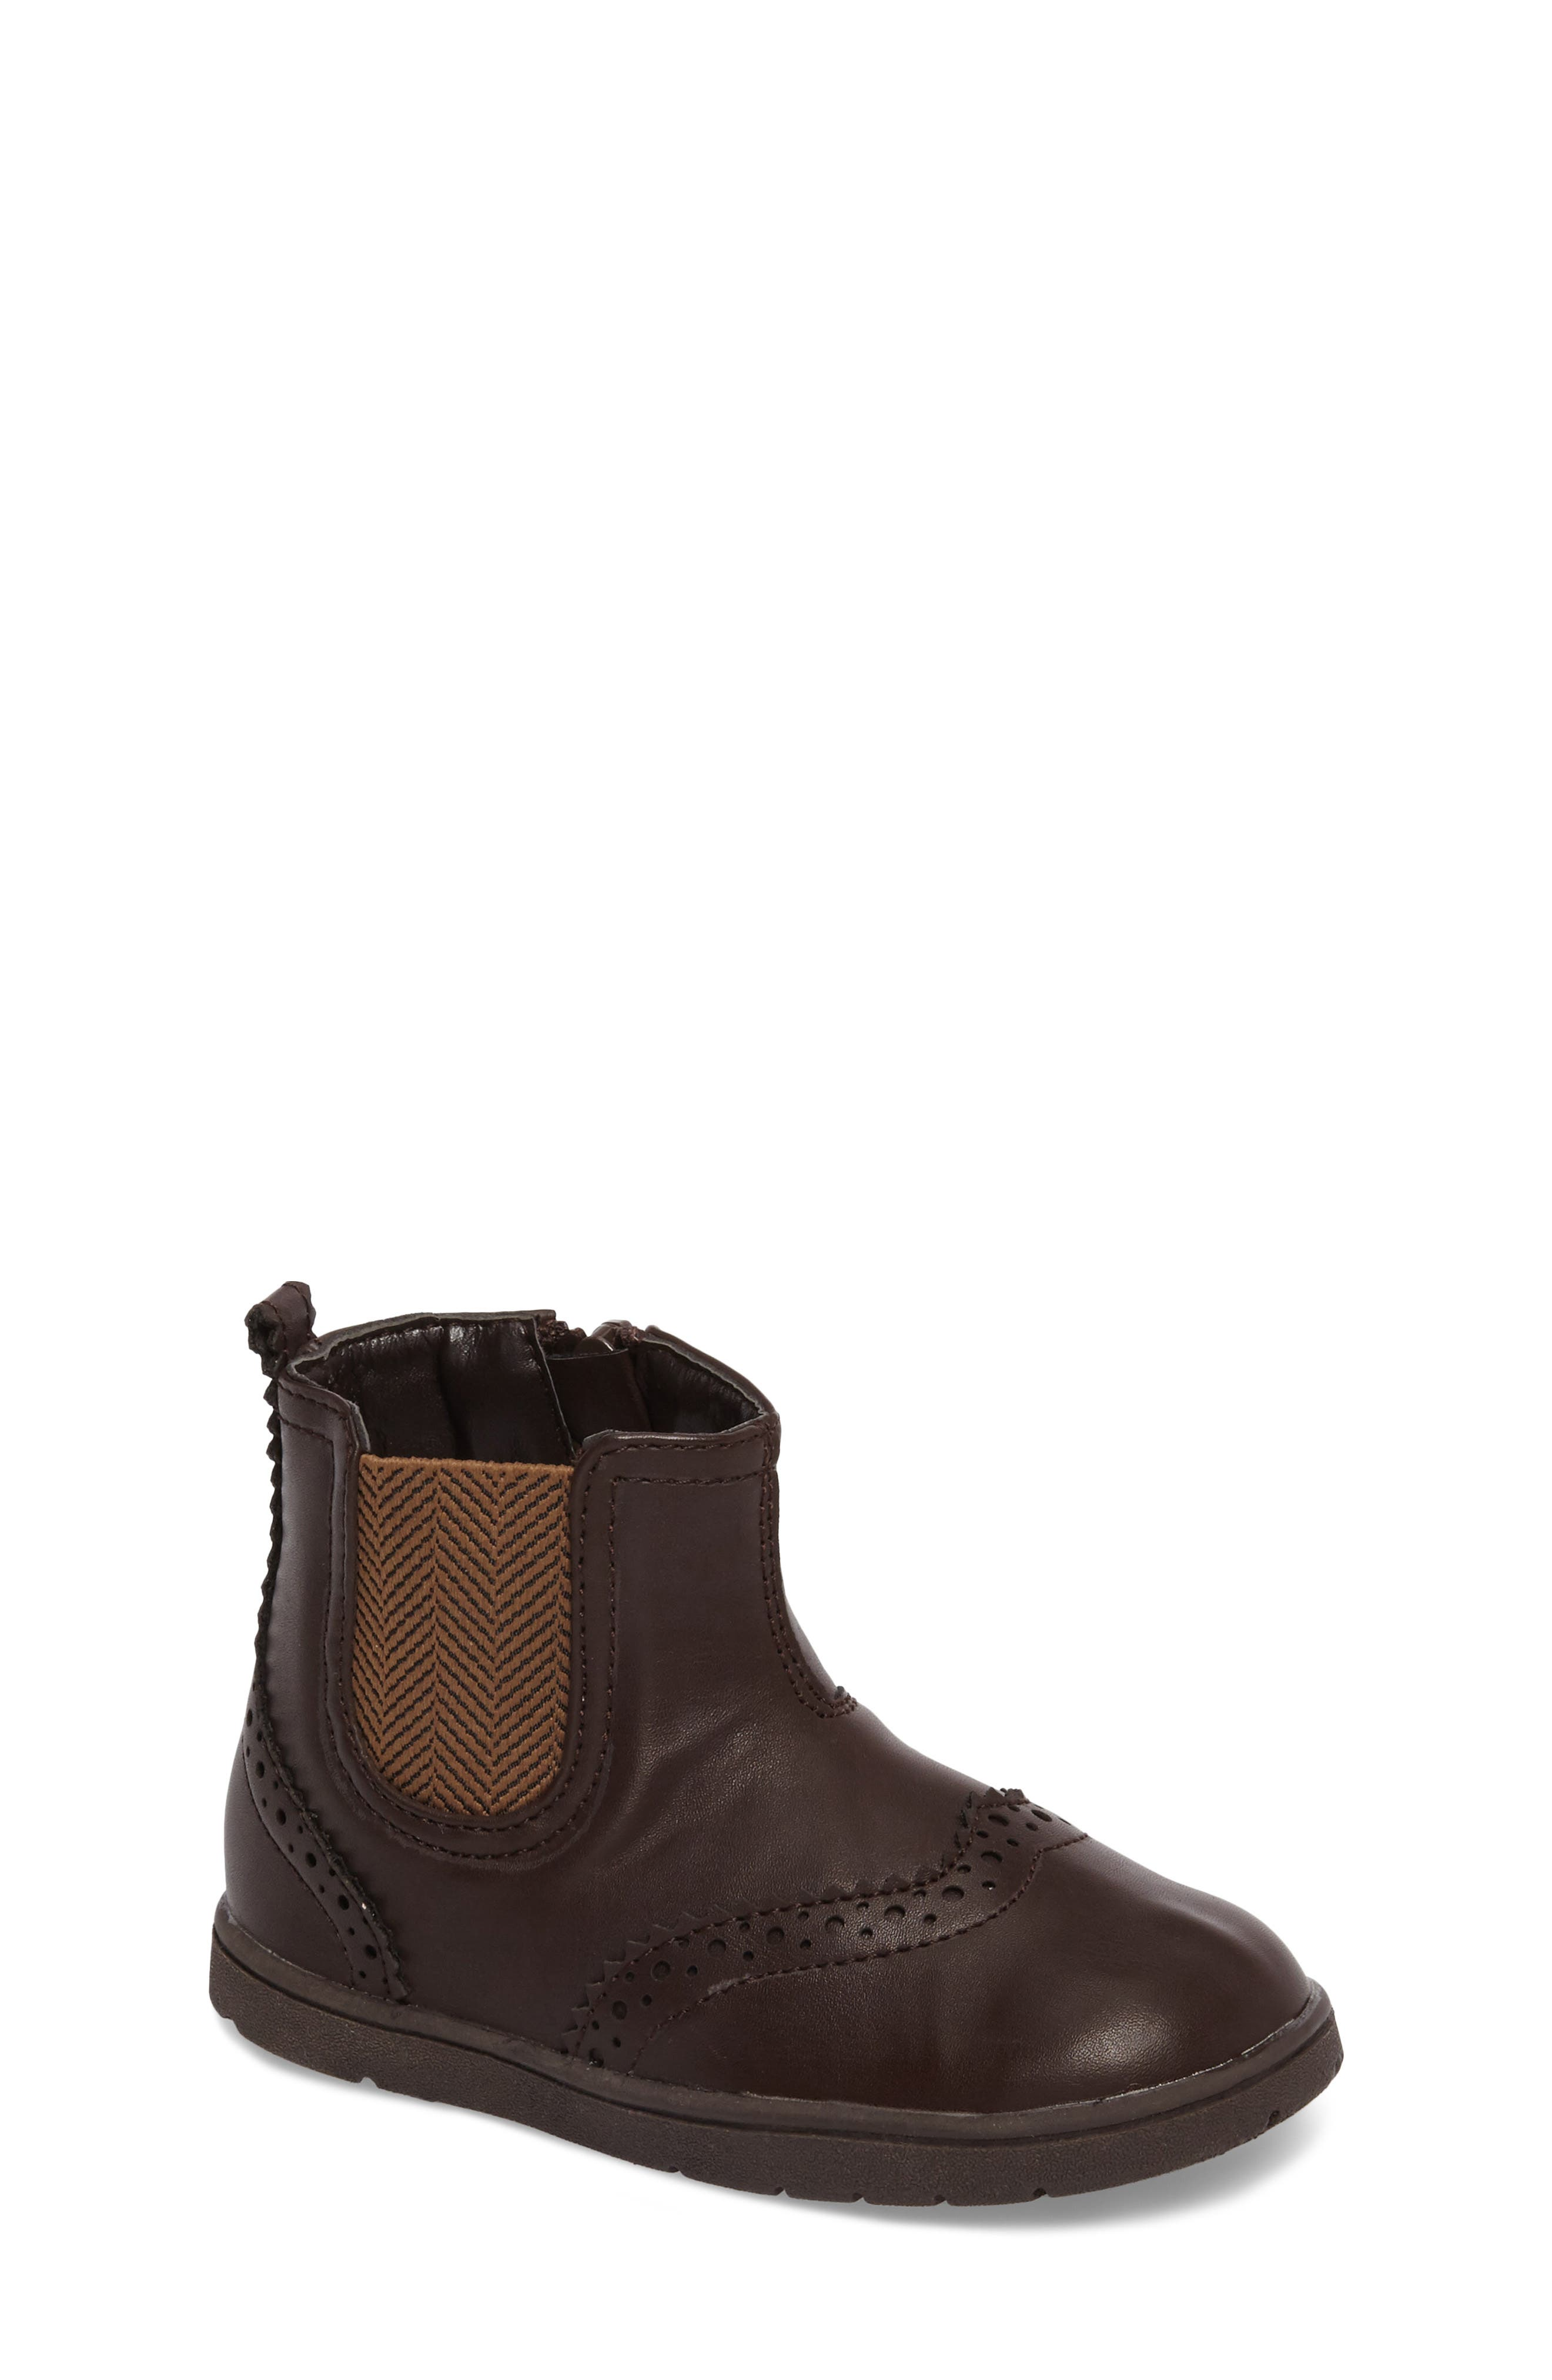 Alternate Image 1 Selected - Kenneth Cole New York Peace Wing Bootie (Baby, Walker & Toddler)